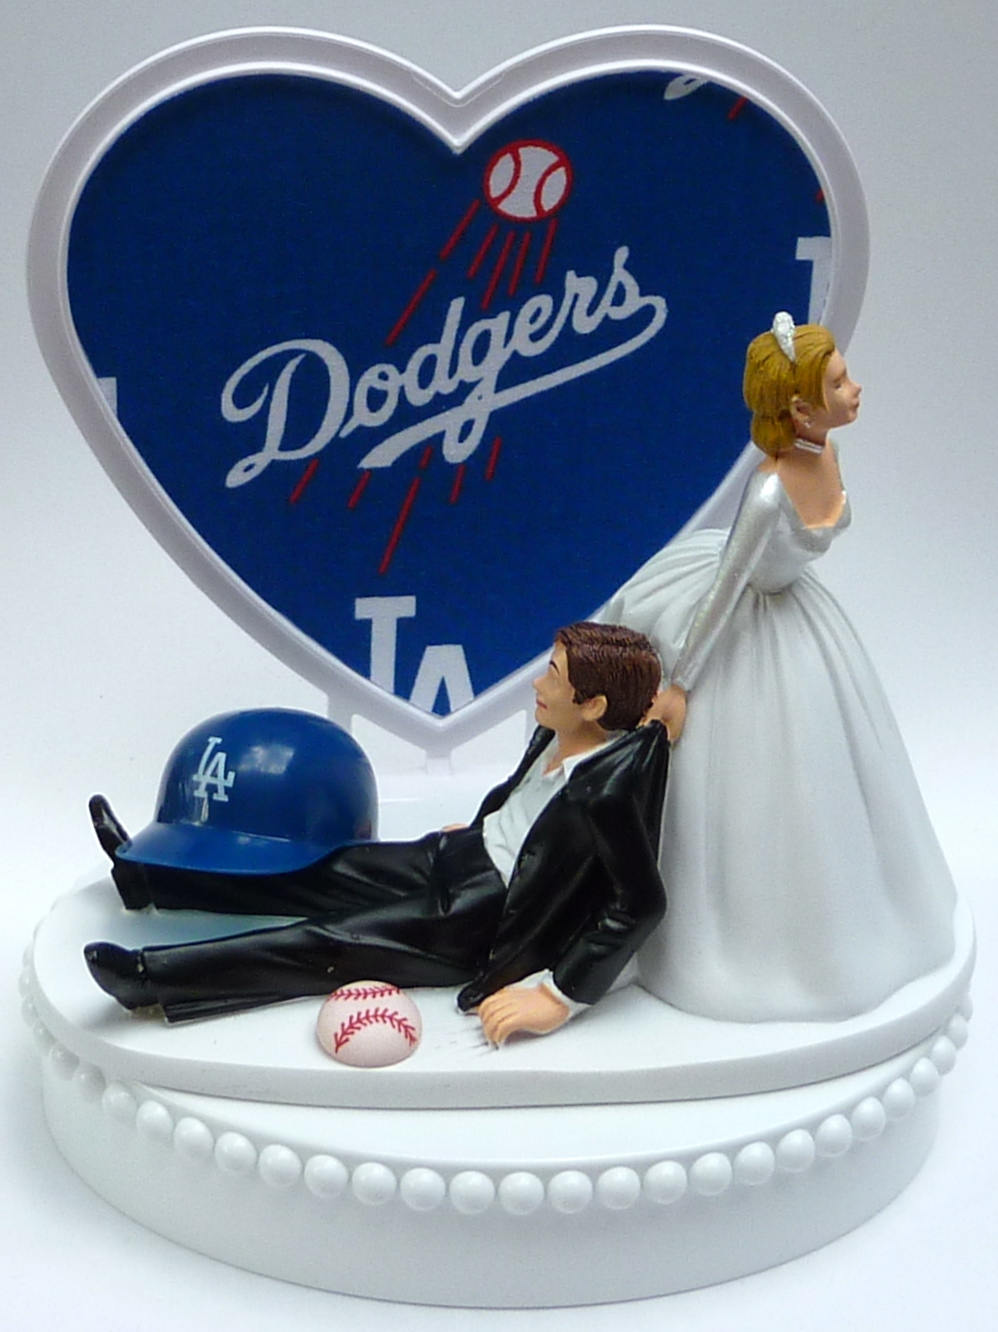 Wedding Cake Topper Los Angeles Dodgers La Baseball Sports Themed with Bridal Garter Humorous Fans Bride Groom Funny Ball Helmet Top